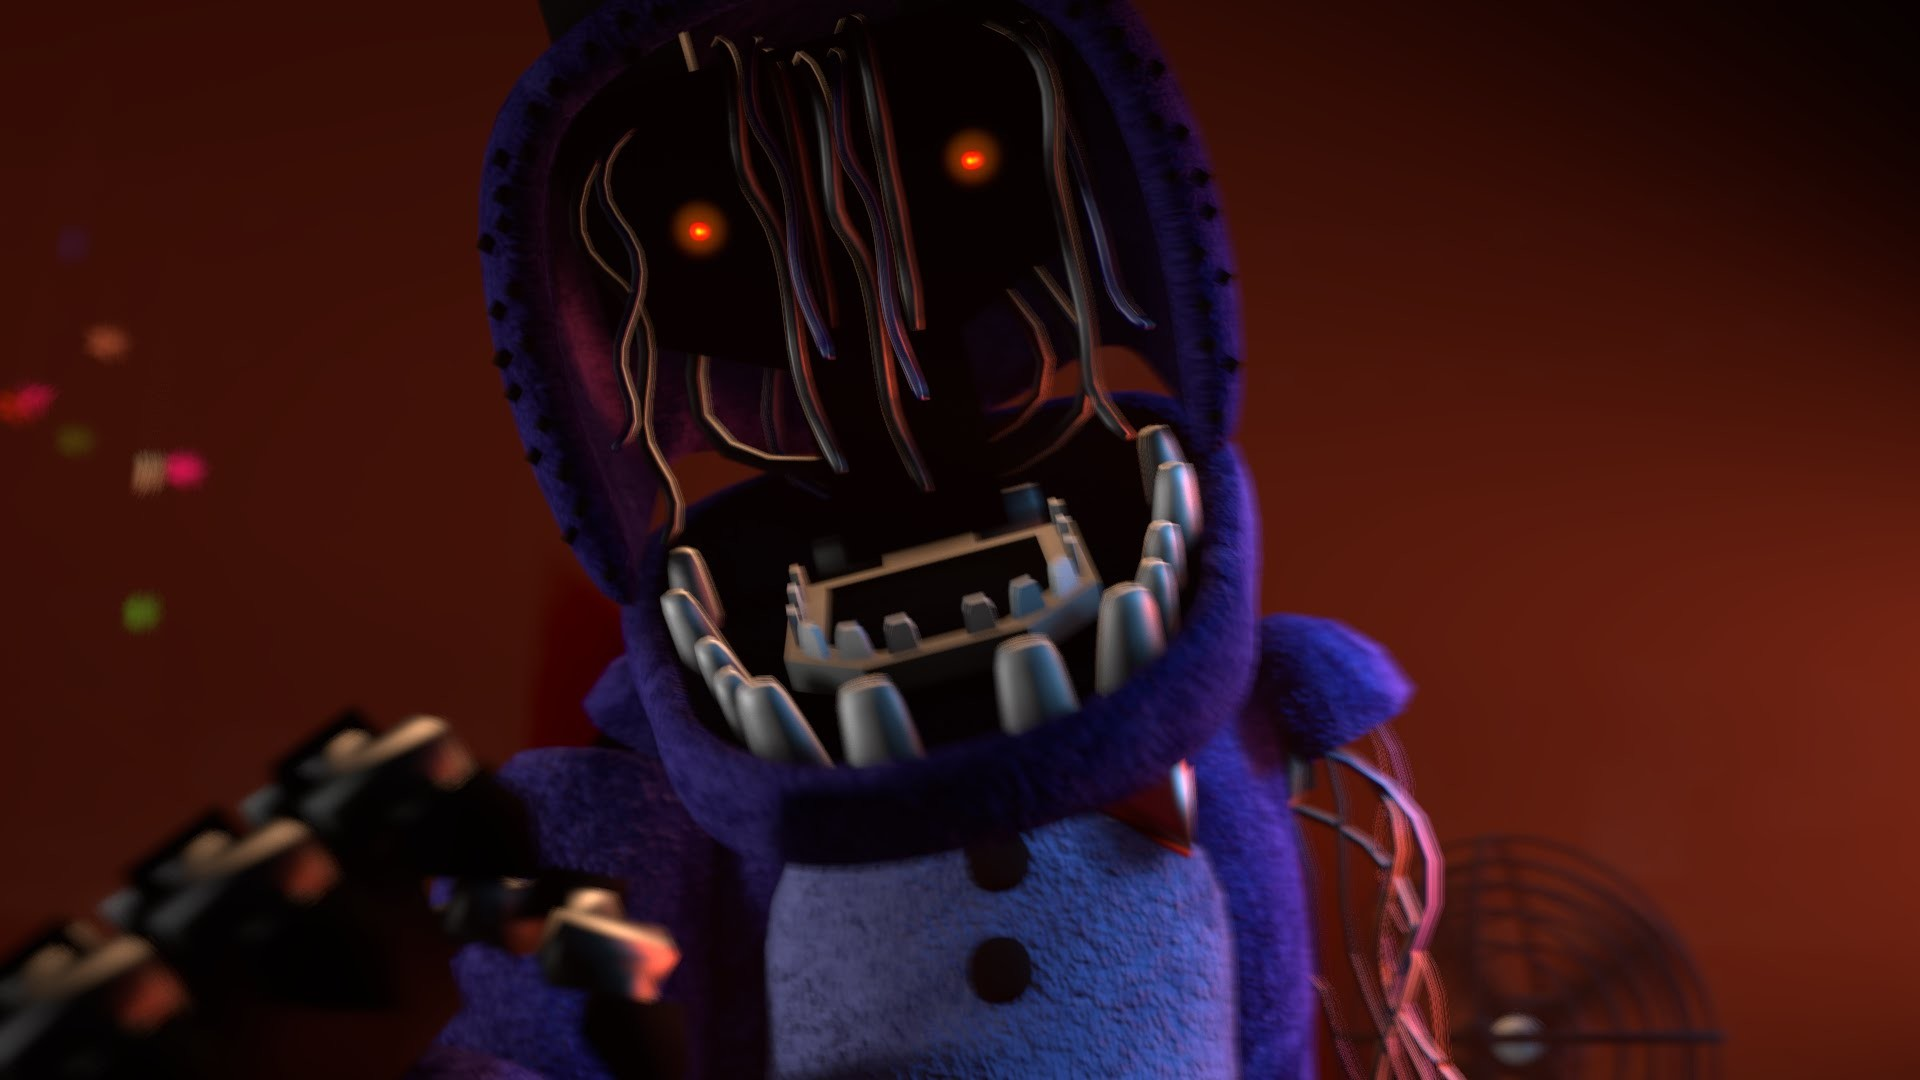 1920x1080 [FNAF SFM] Withered Bonnie Jumpscare (New Model) - YouTube